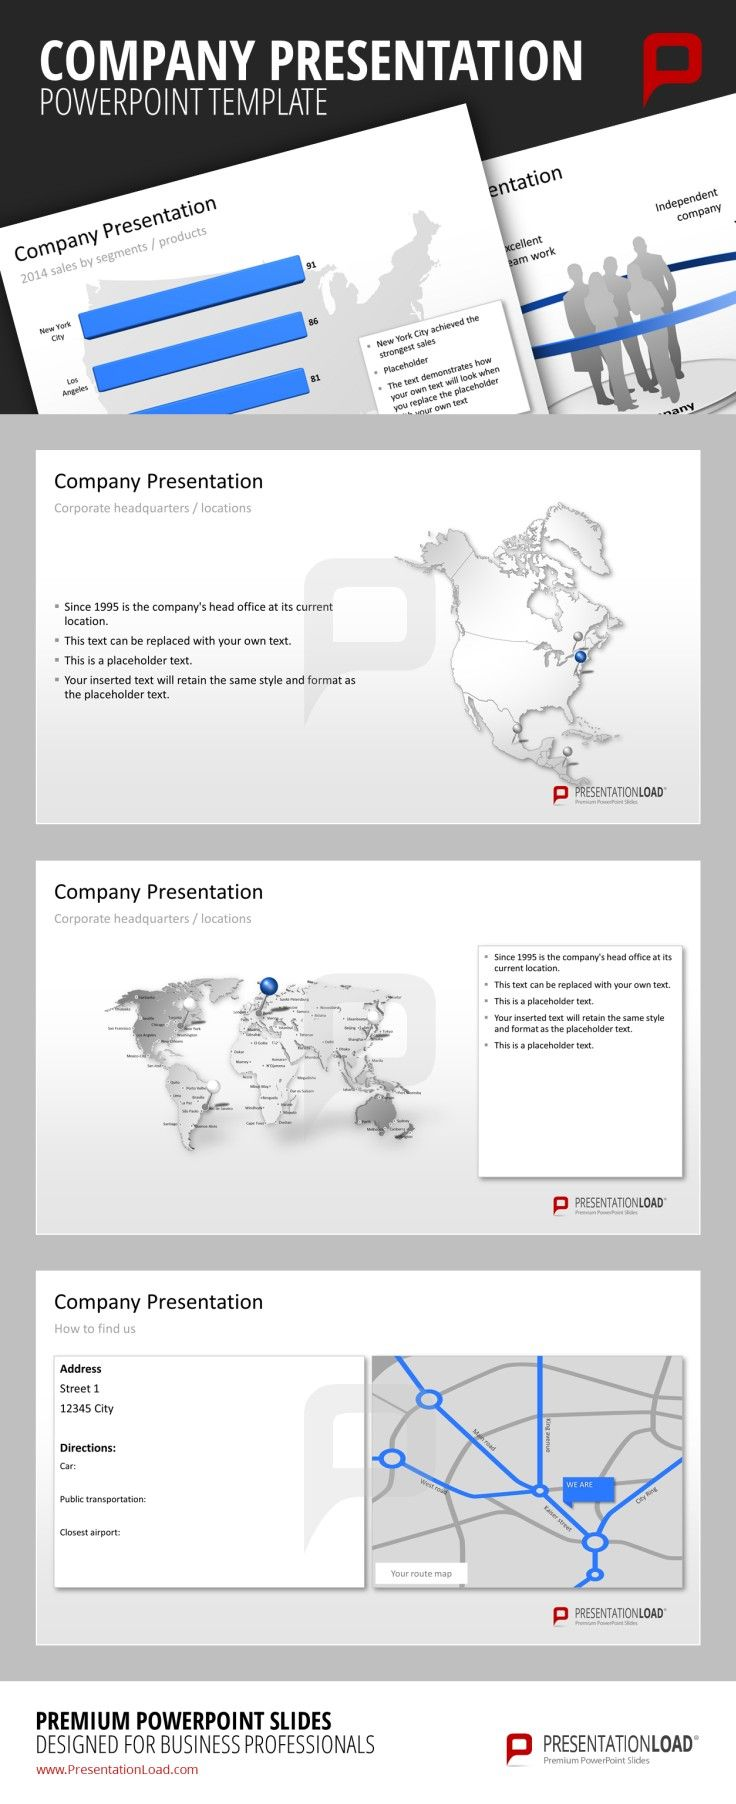 company presentation powerpoint templates the company presentation, Presentation templates